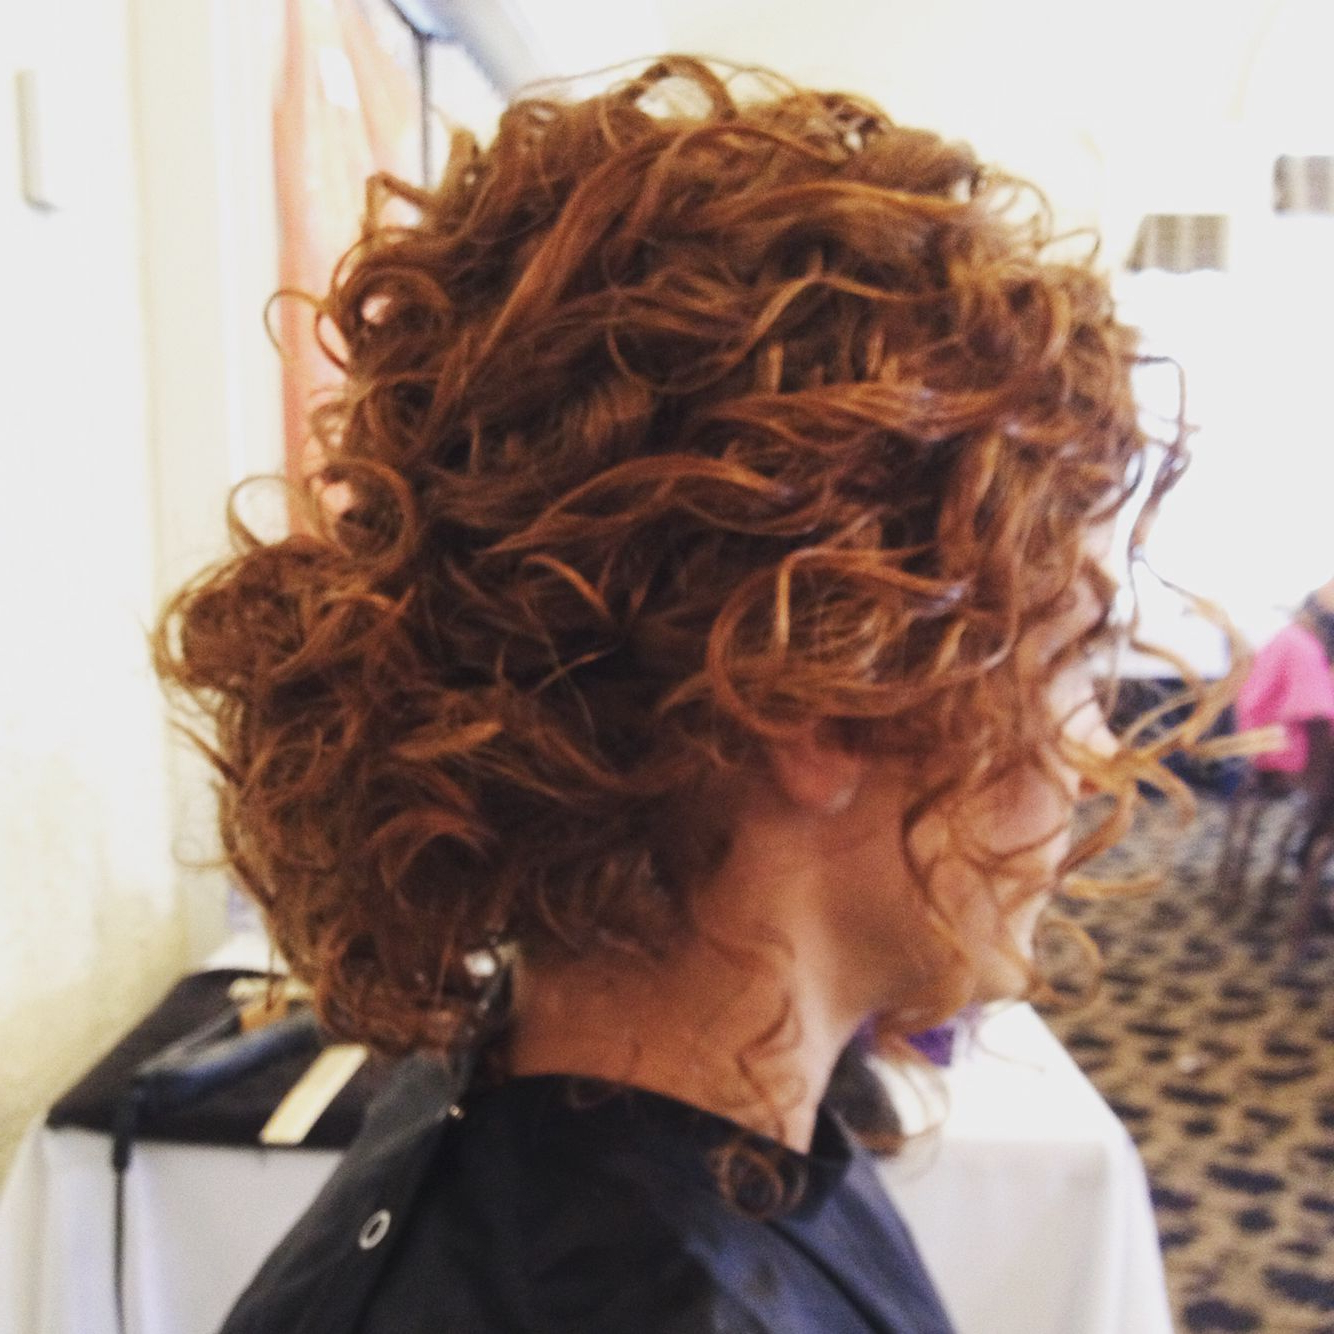 Curly Hair Styles (View 10 of 20)